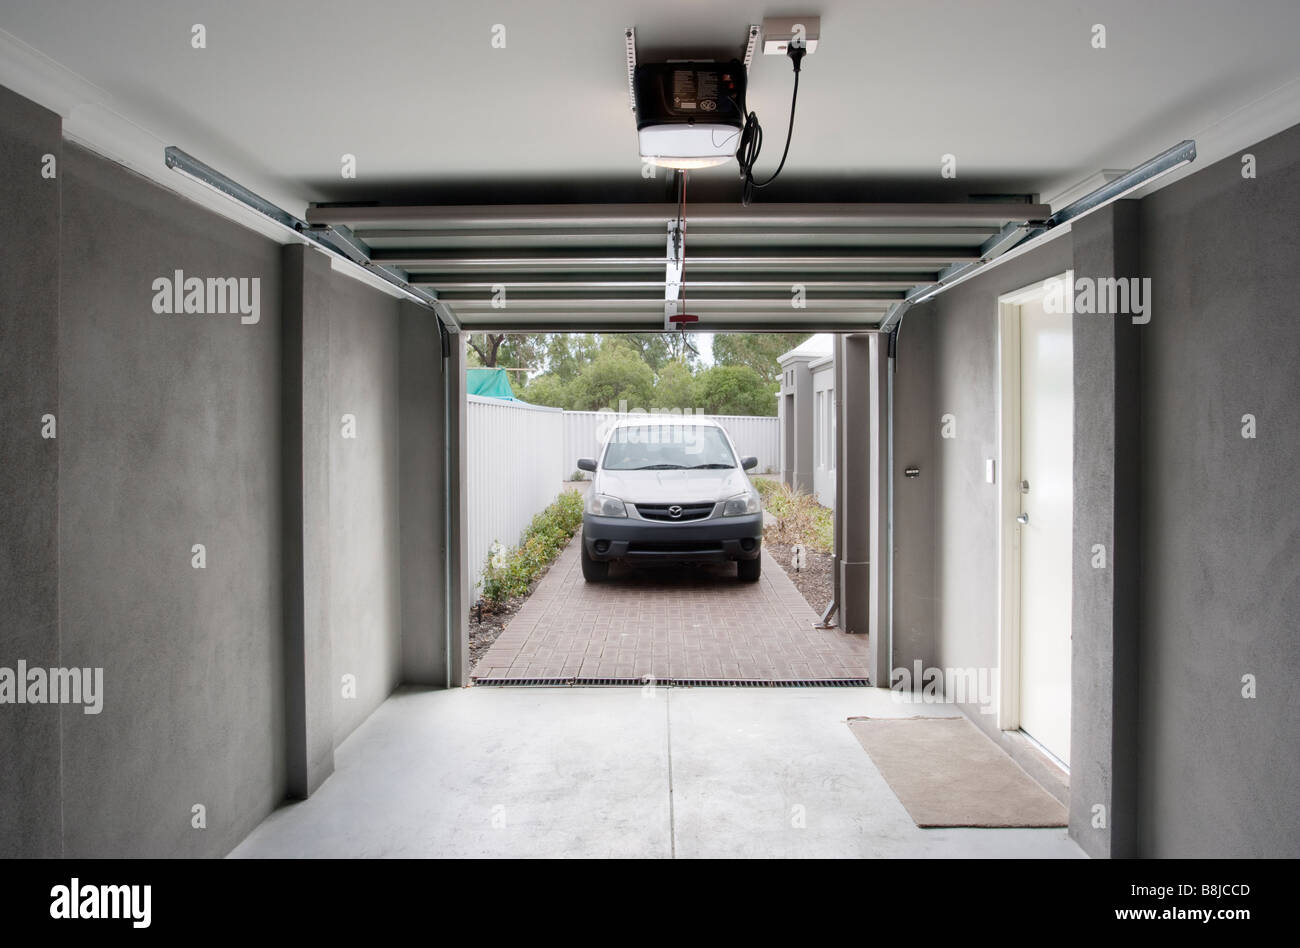 A Car Driving Into A Garage With An Automatic Garage Door